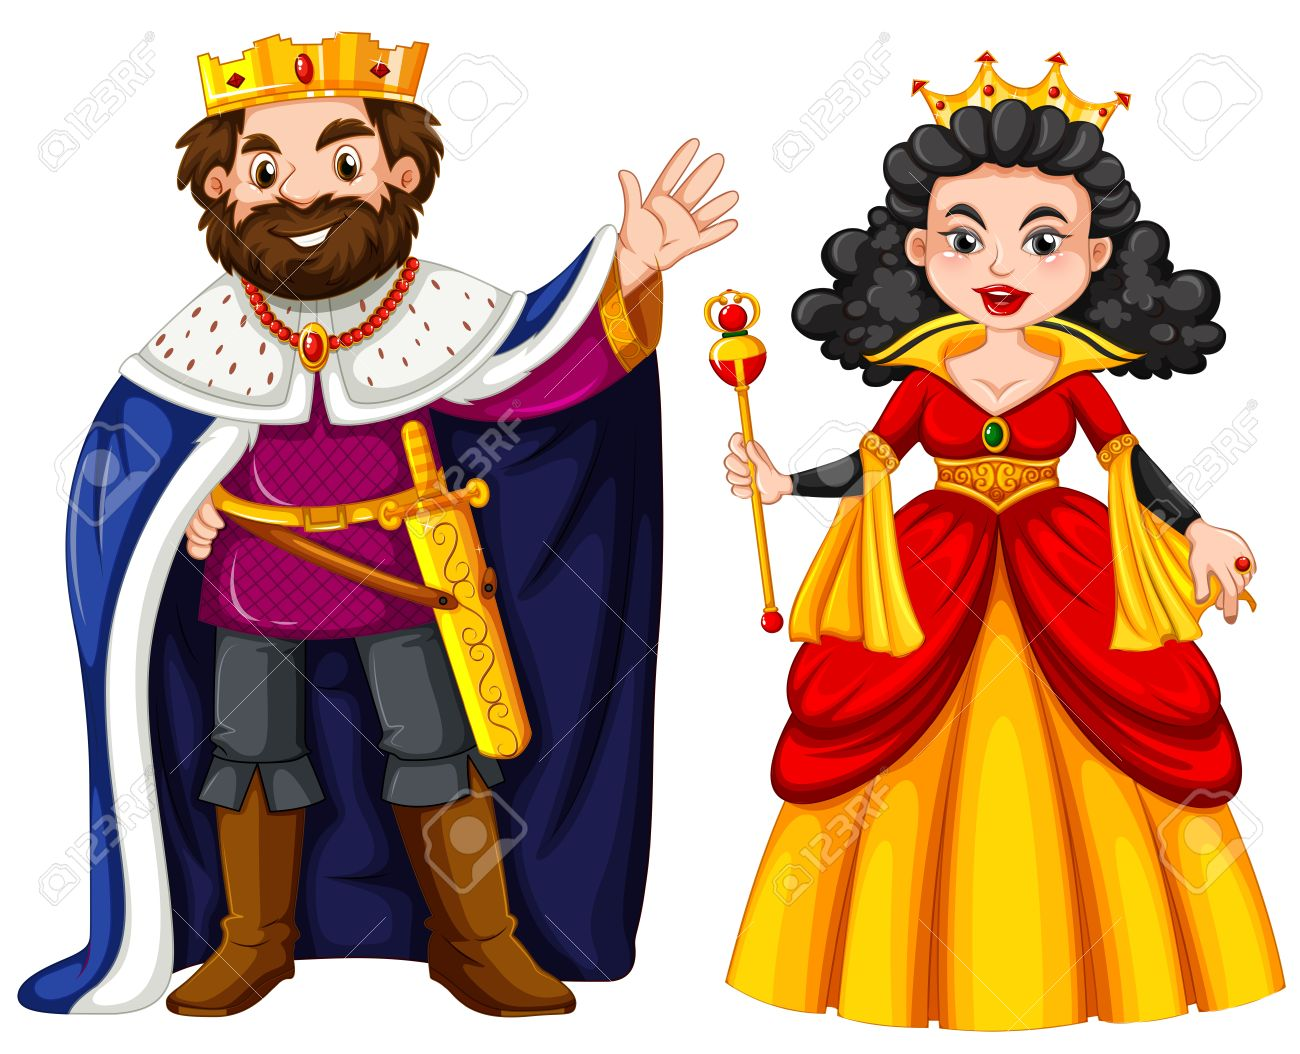 Clipart Of King.